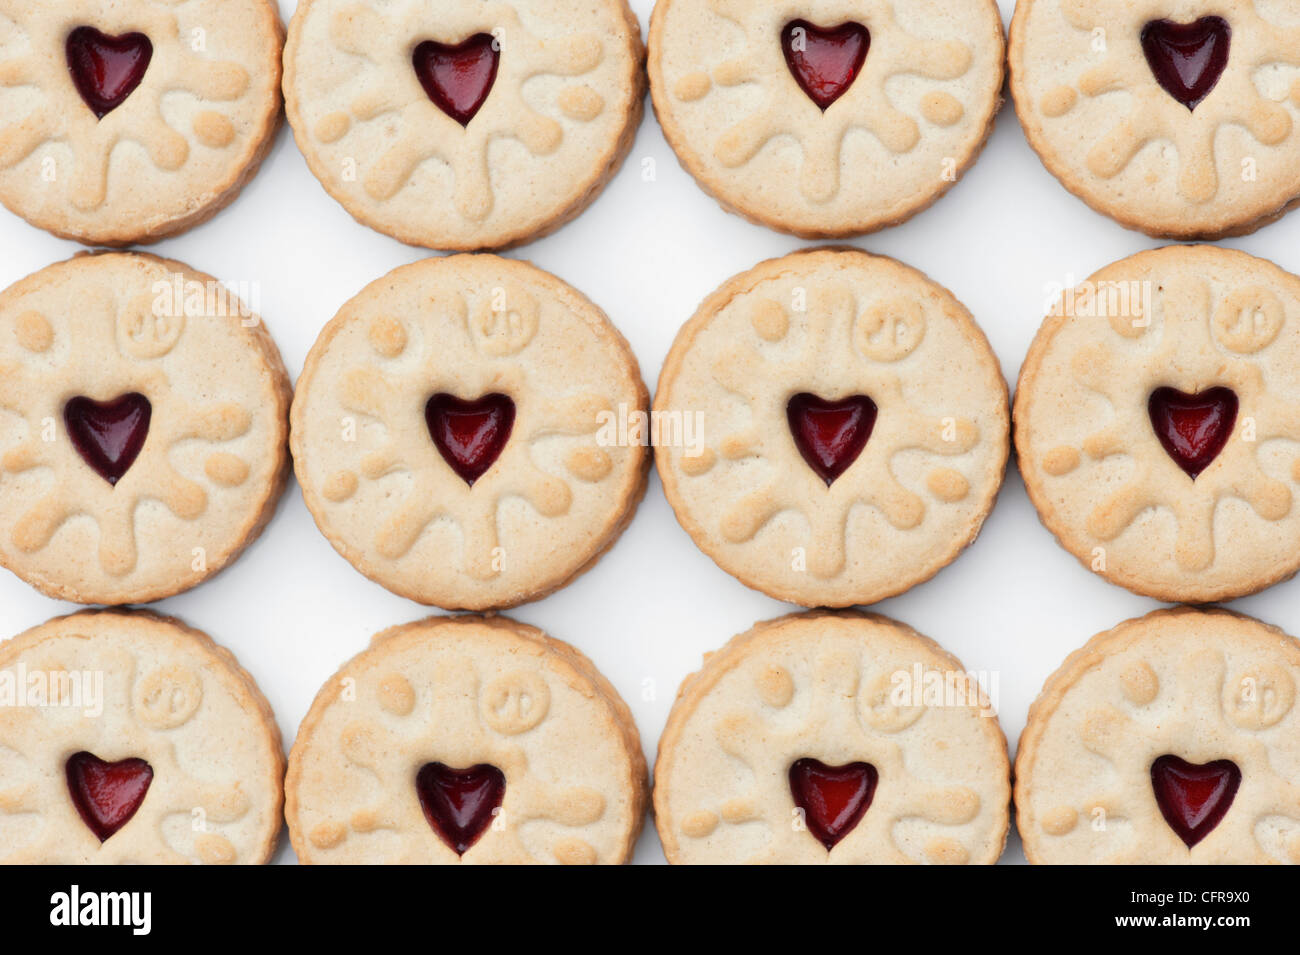 Jammy Dodgers biscuit pattern - Stock Image